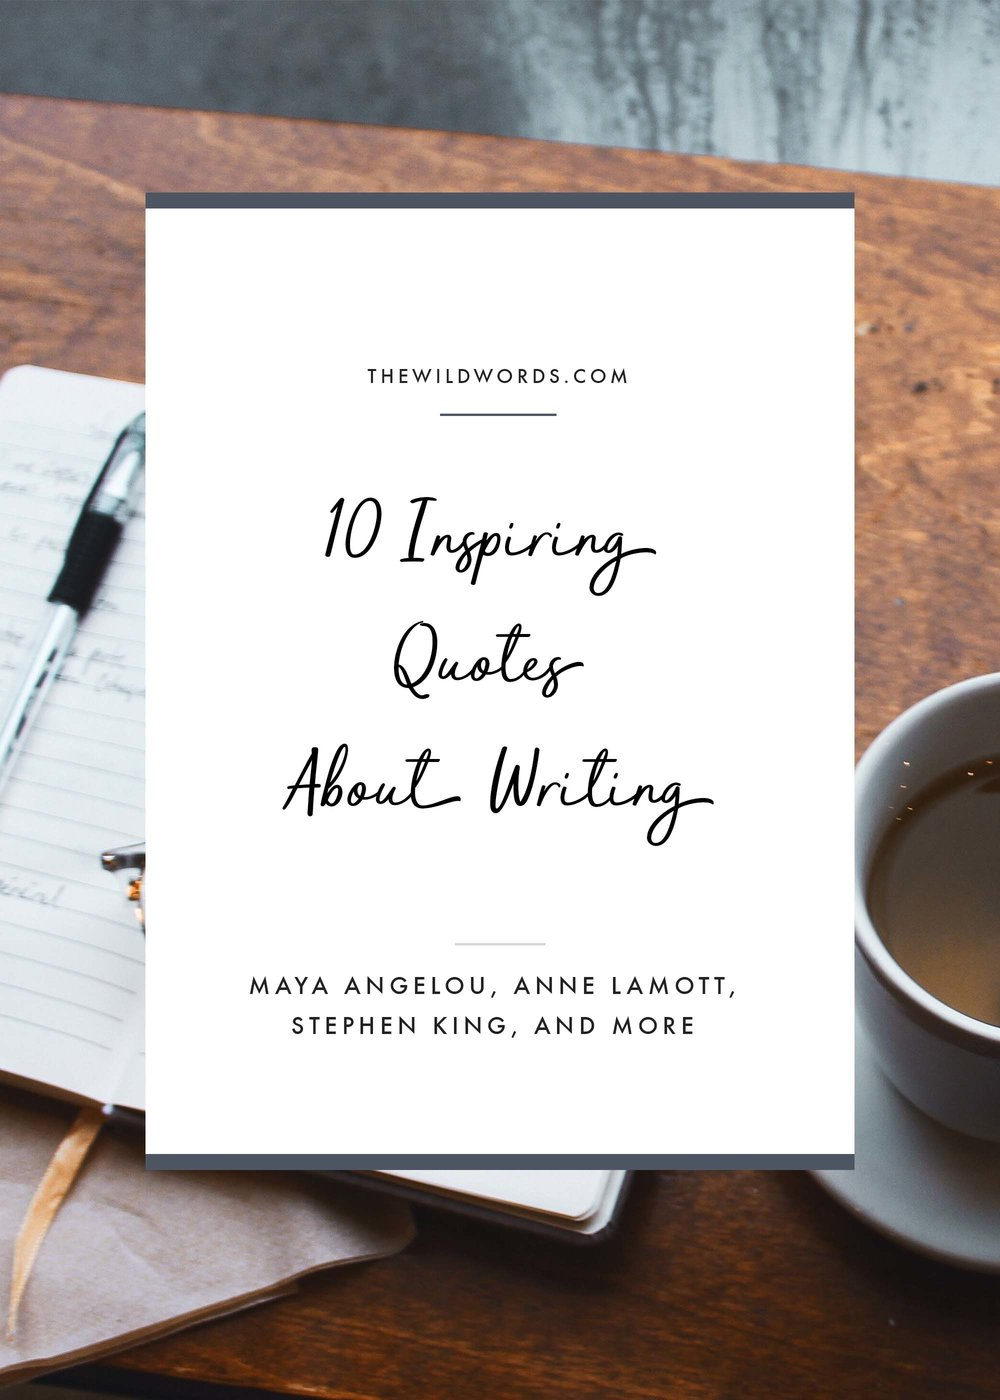 10 Inspiring Quotes About Writing | Wild Words #writinglife #writingquotes #inspirationalquote #inspiringquotes